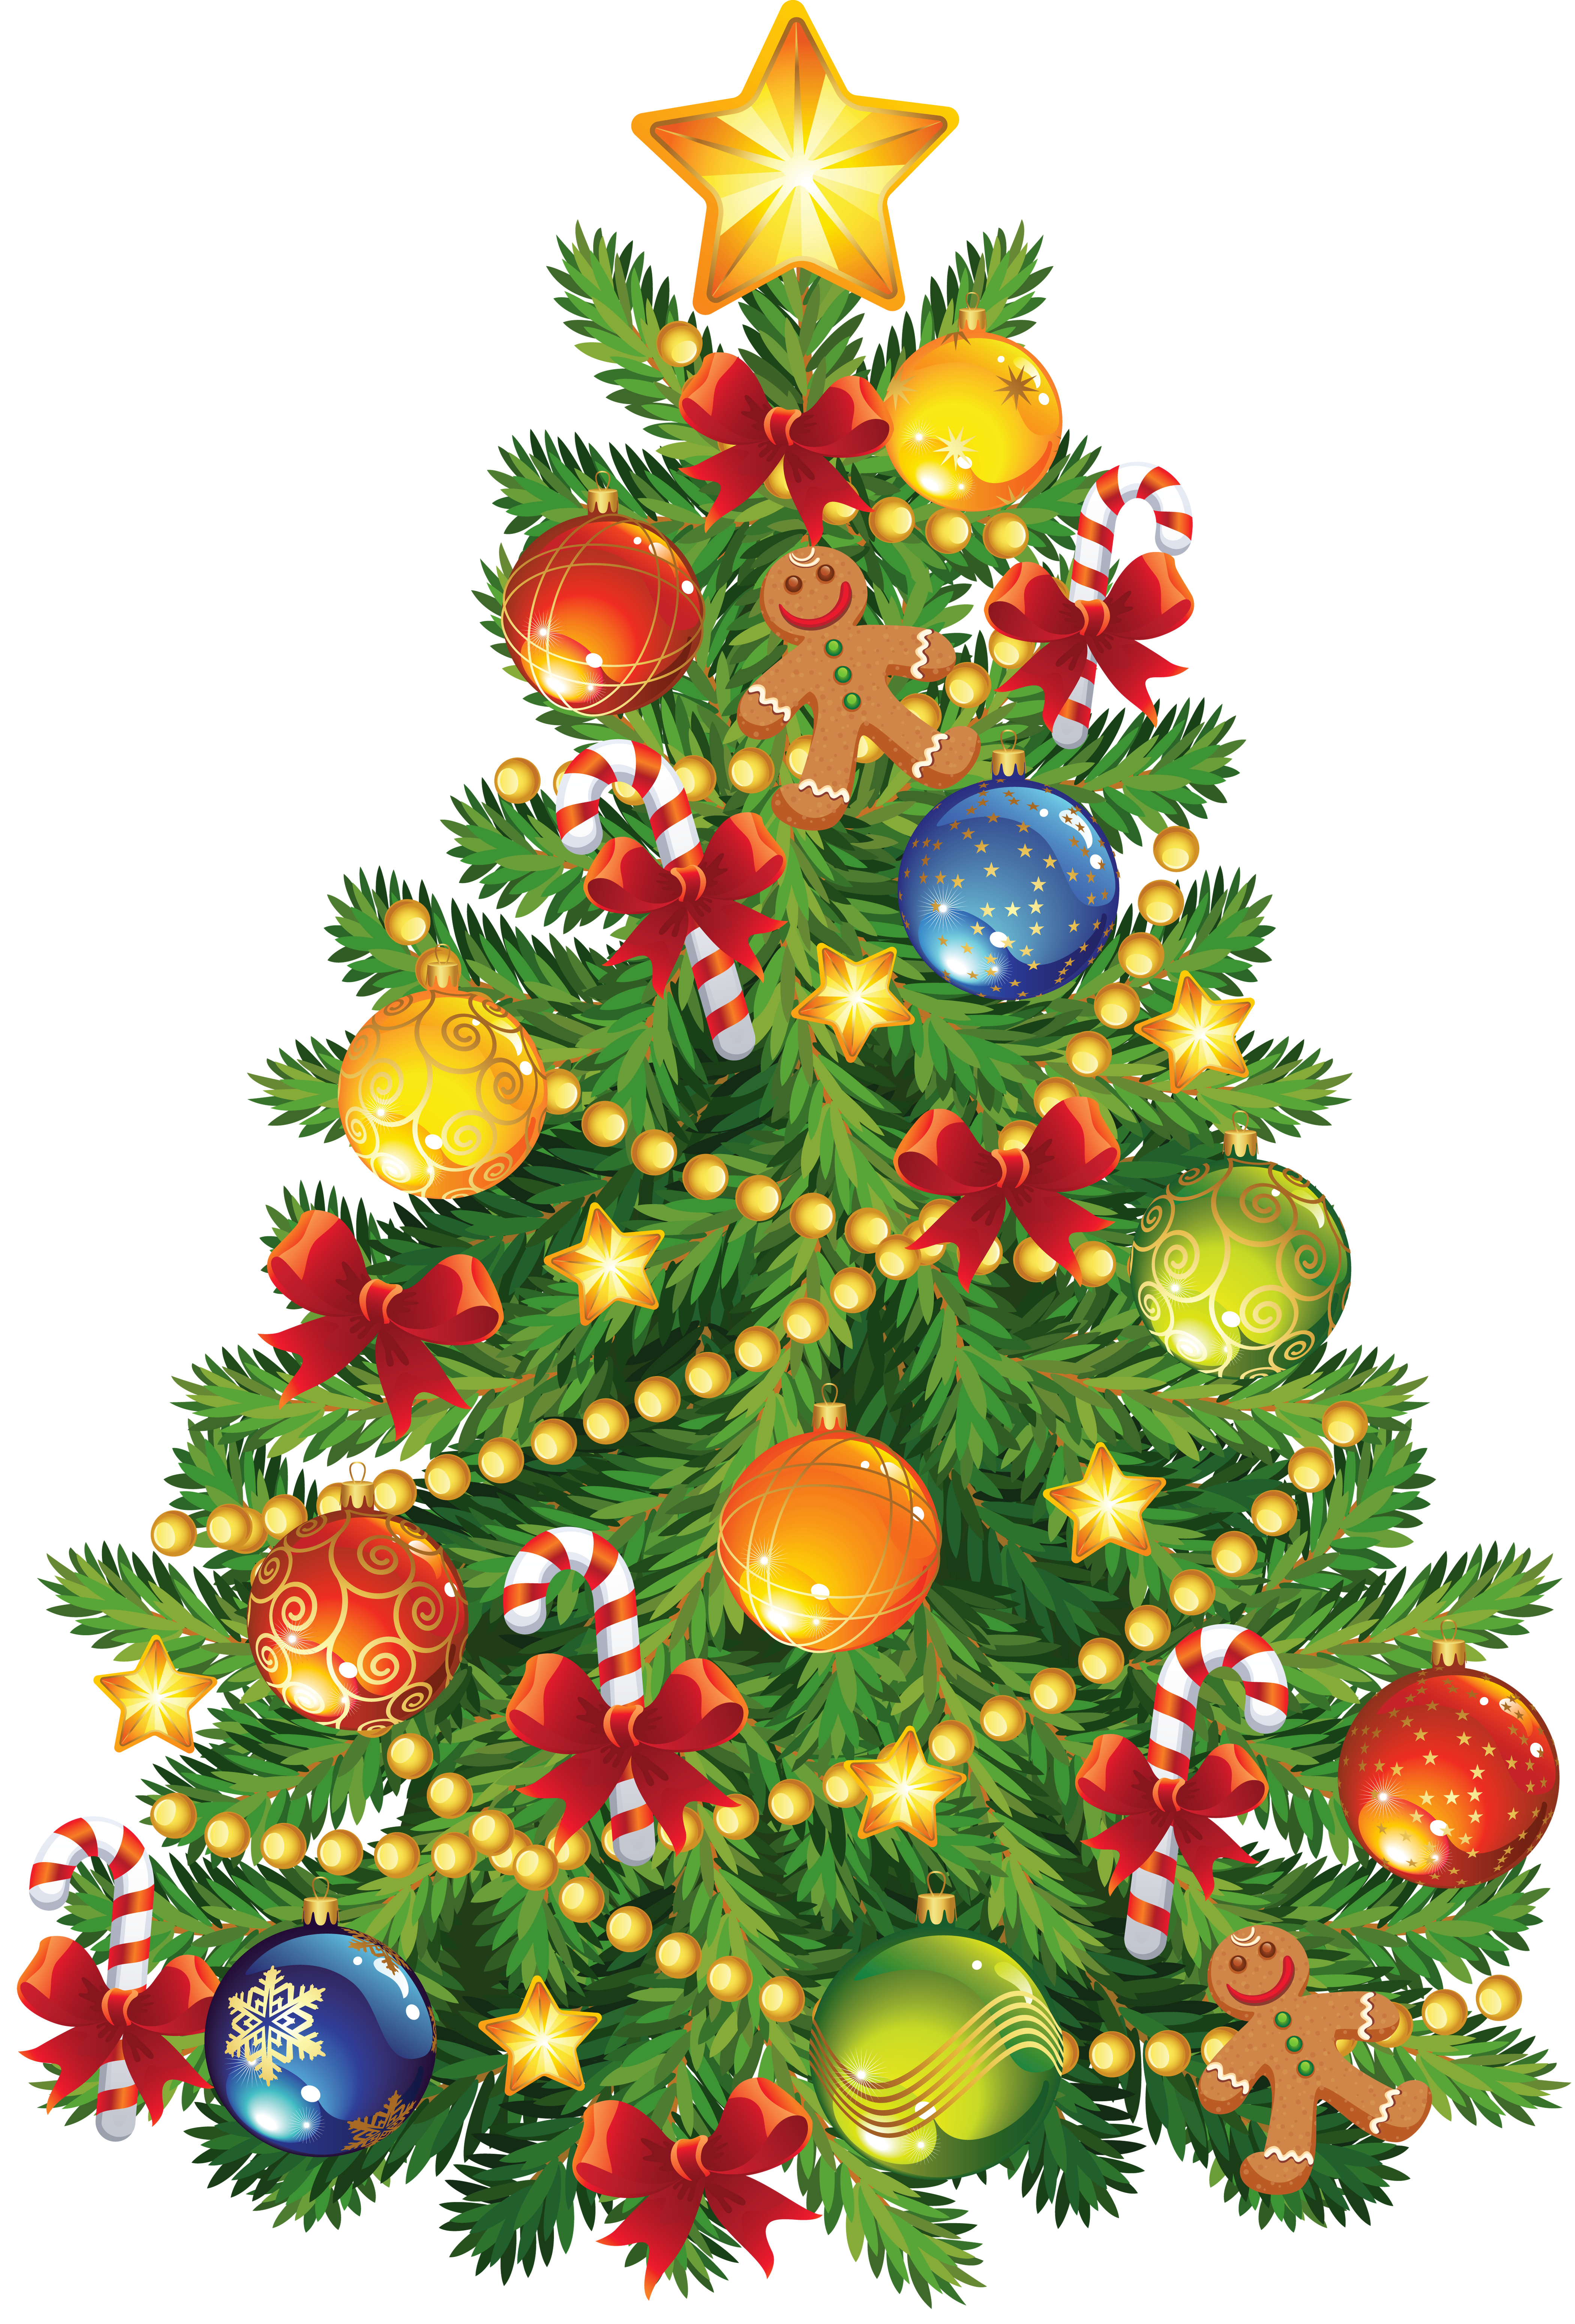 Large Transparent Christmas Tree With Gingerbread Ornament Clipart Christmas Drawing Christmas Tree Images Christmas Art